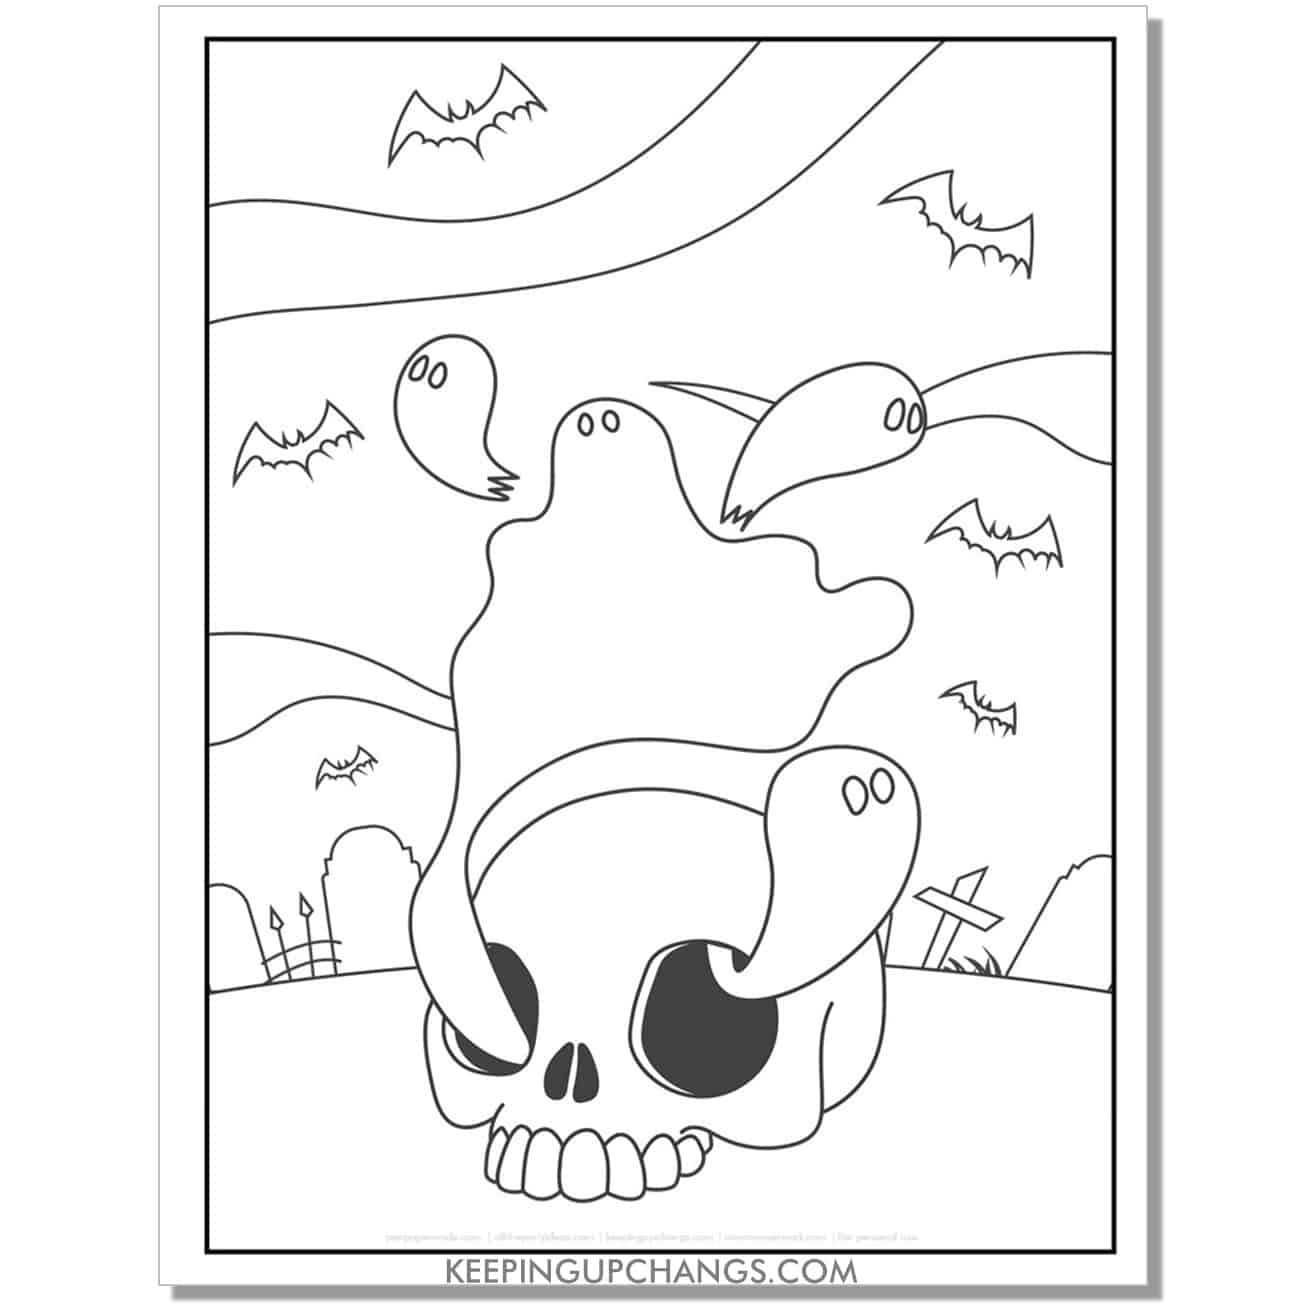 easy skull ghost, bat full size coloring page for kids.